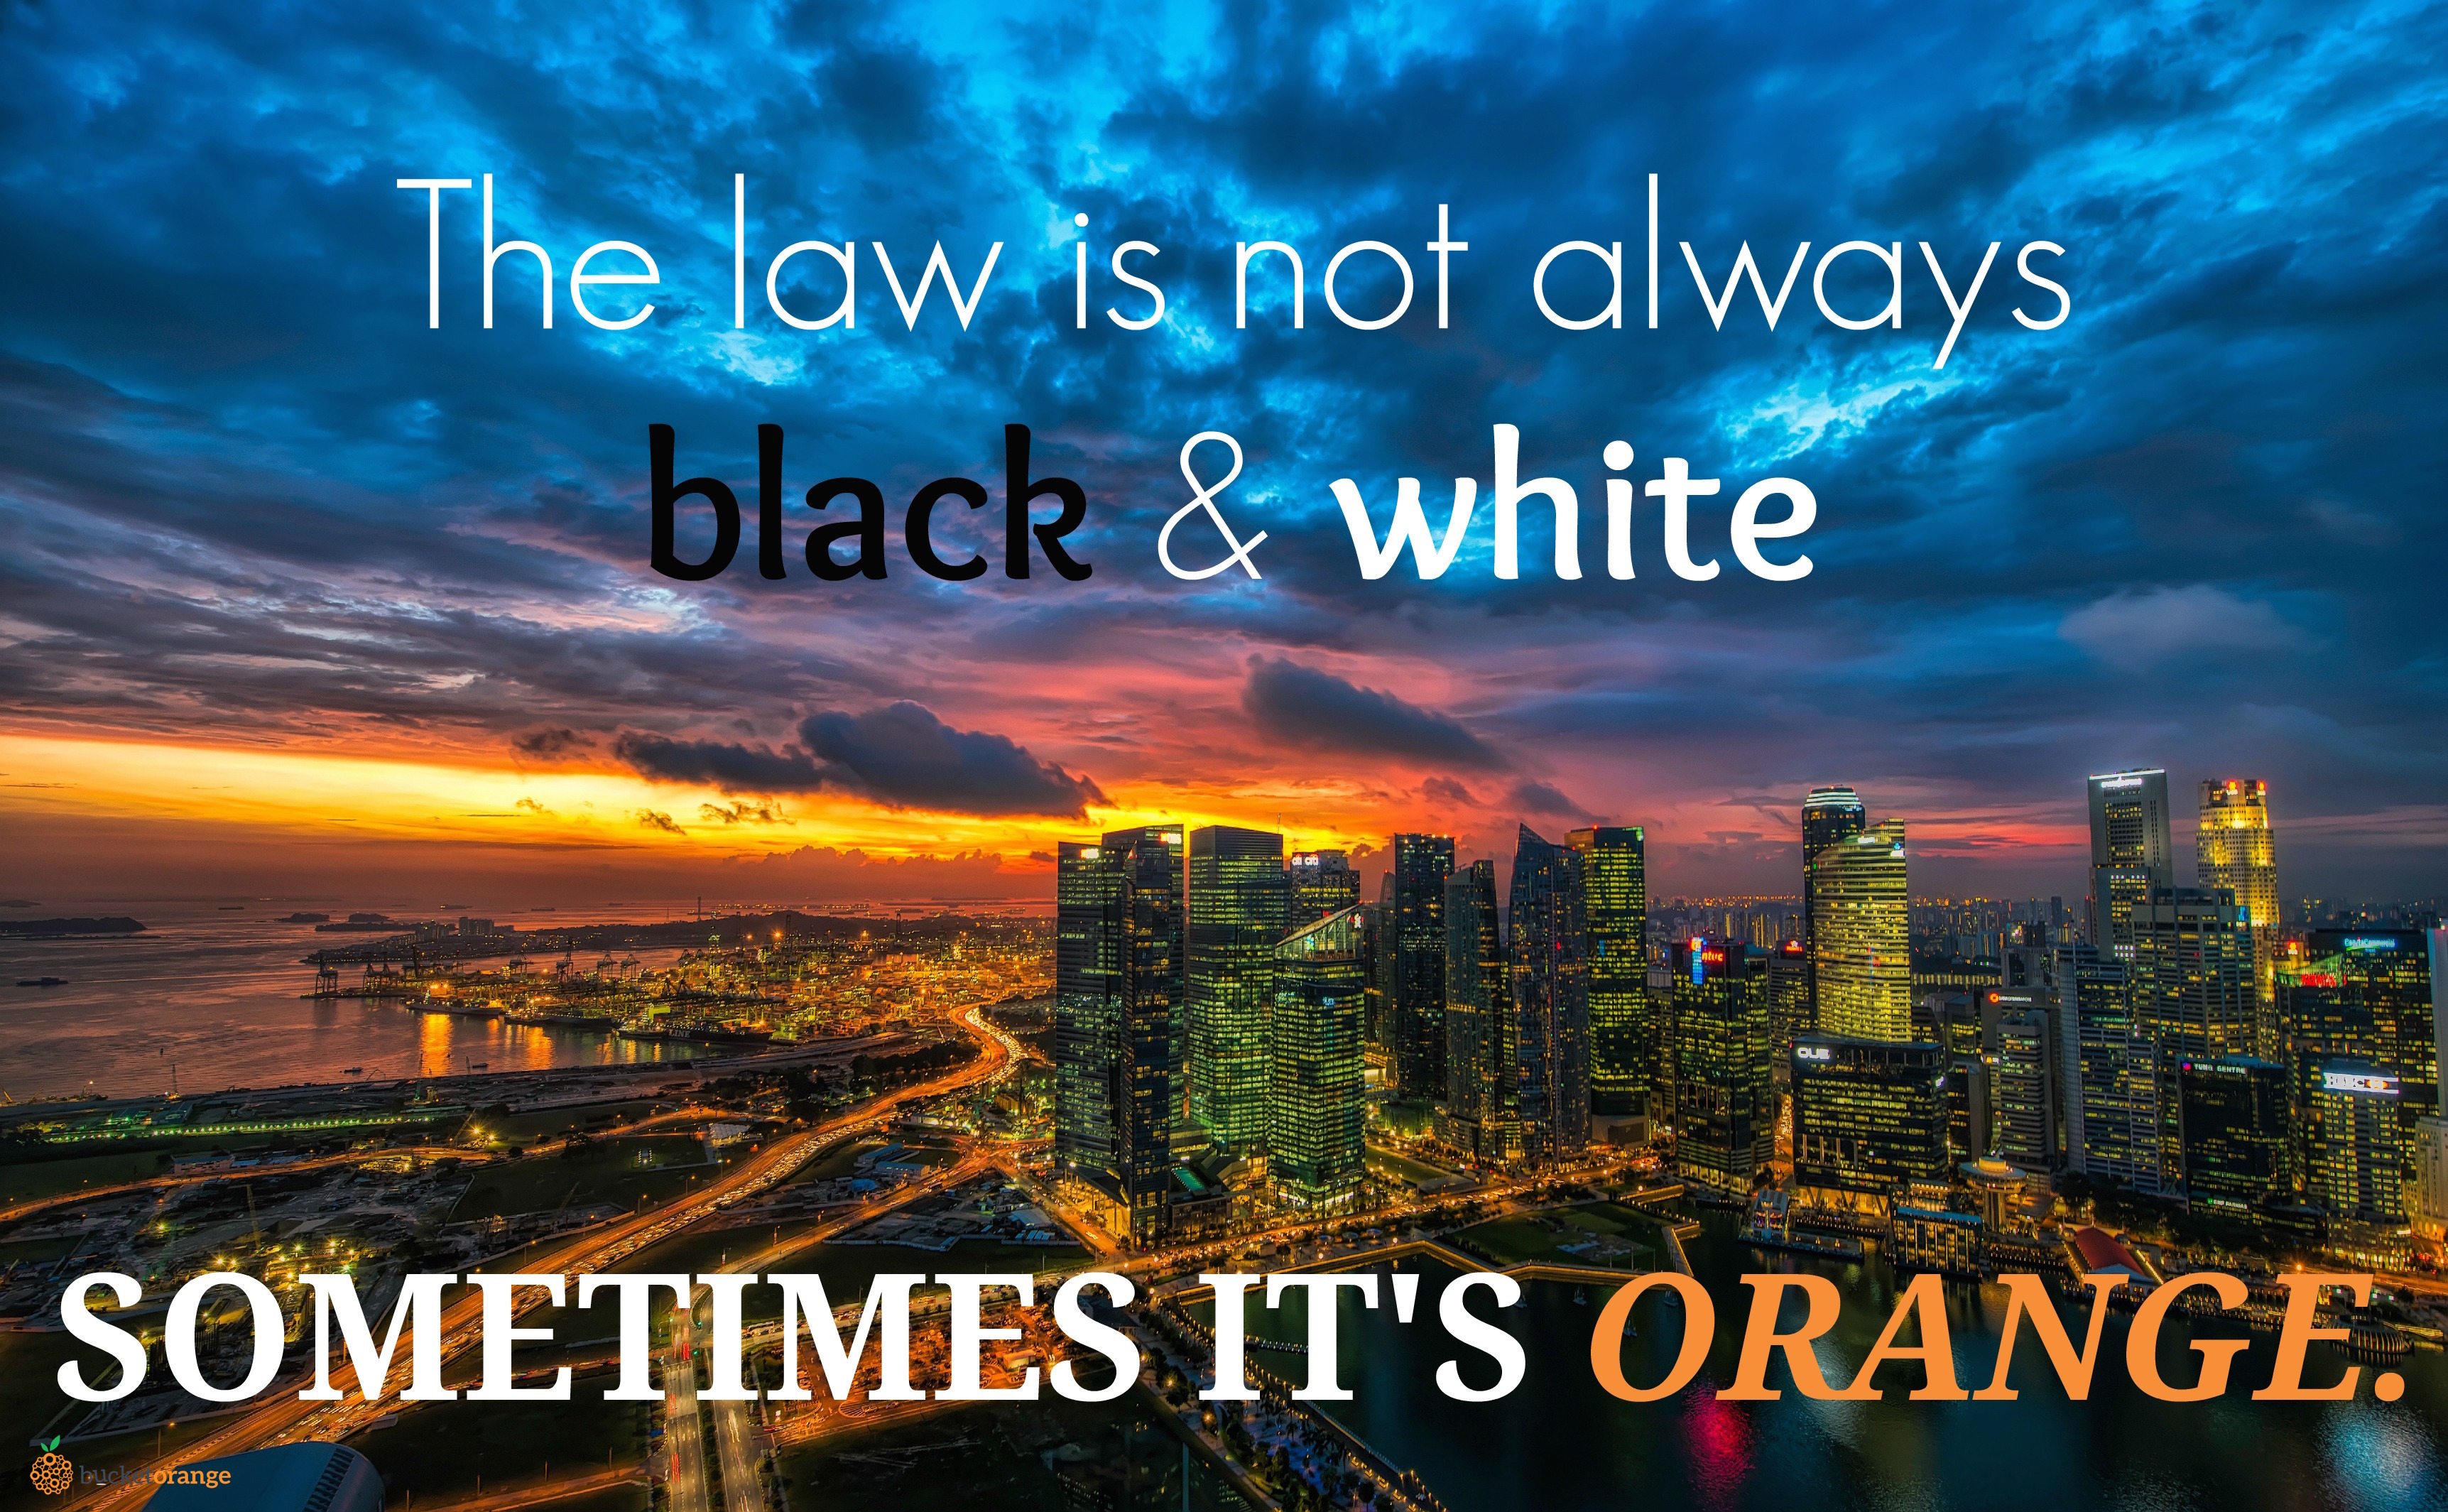 THE LAW IS ORANGE 2